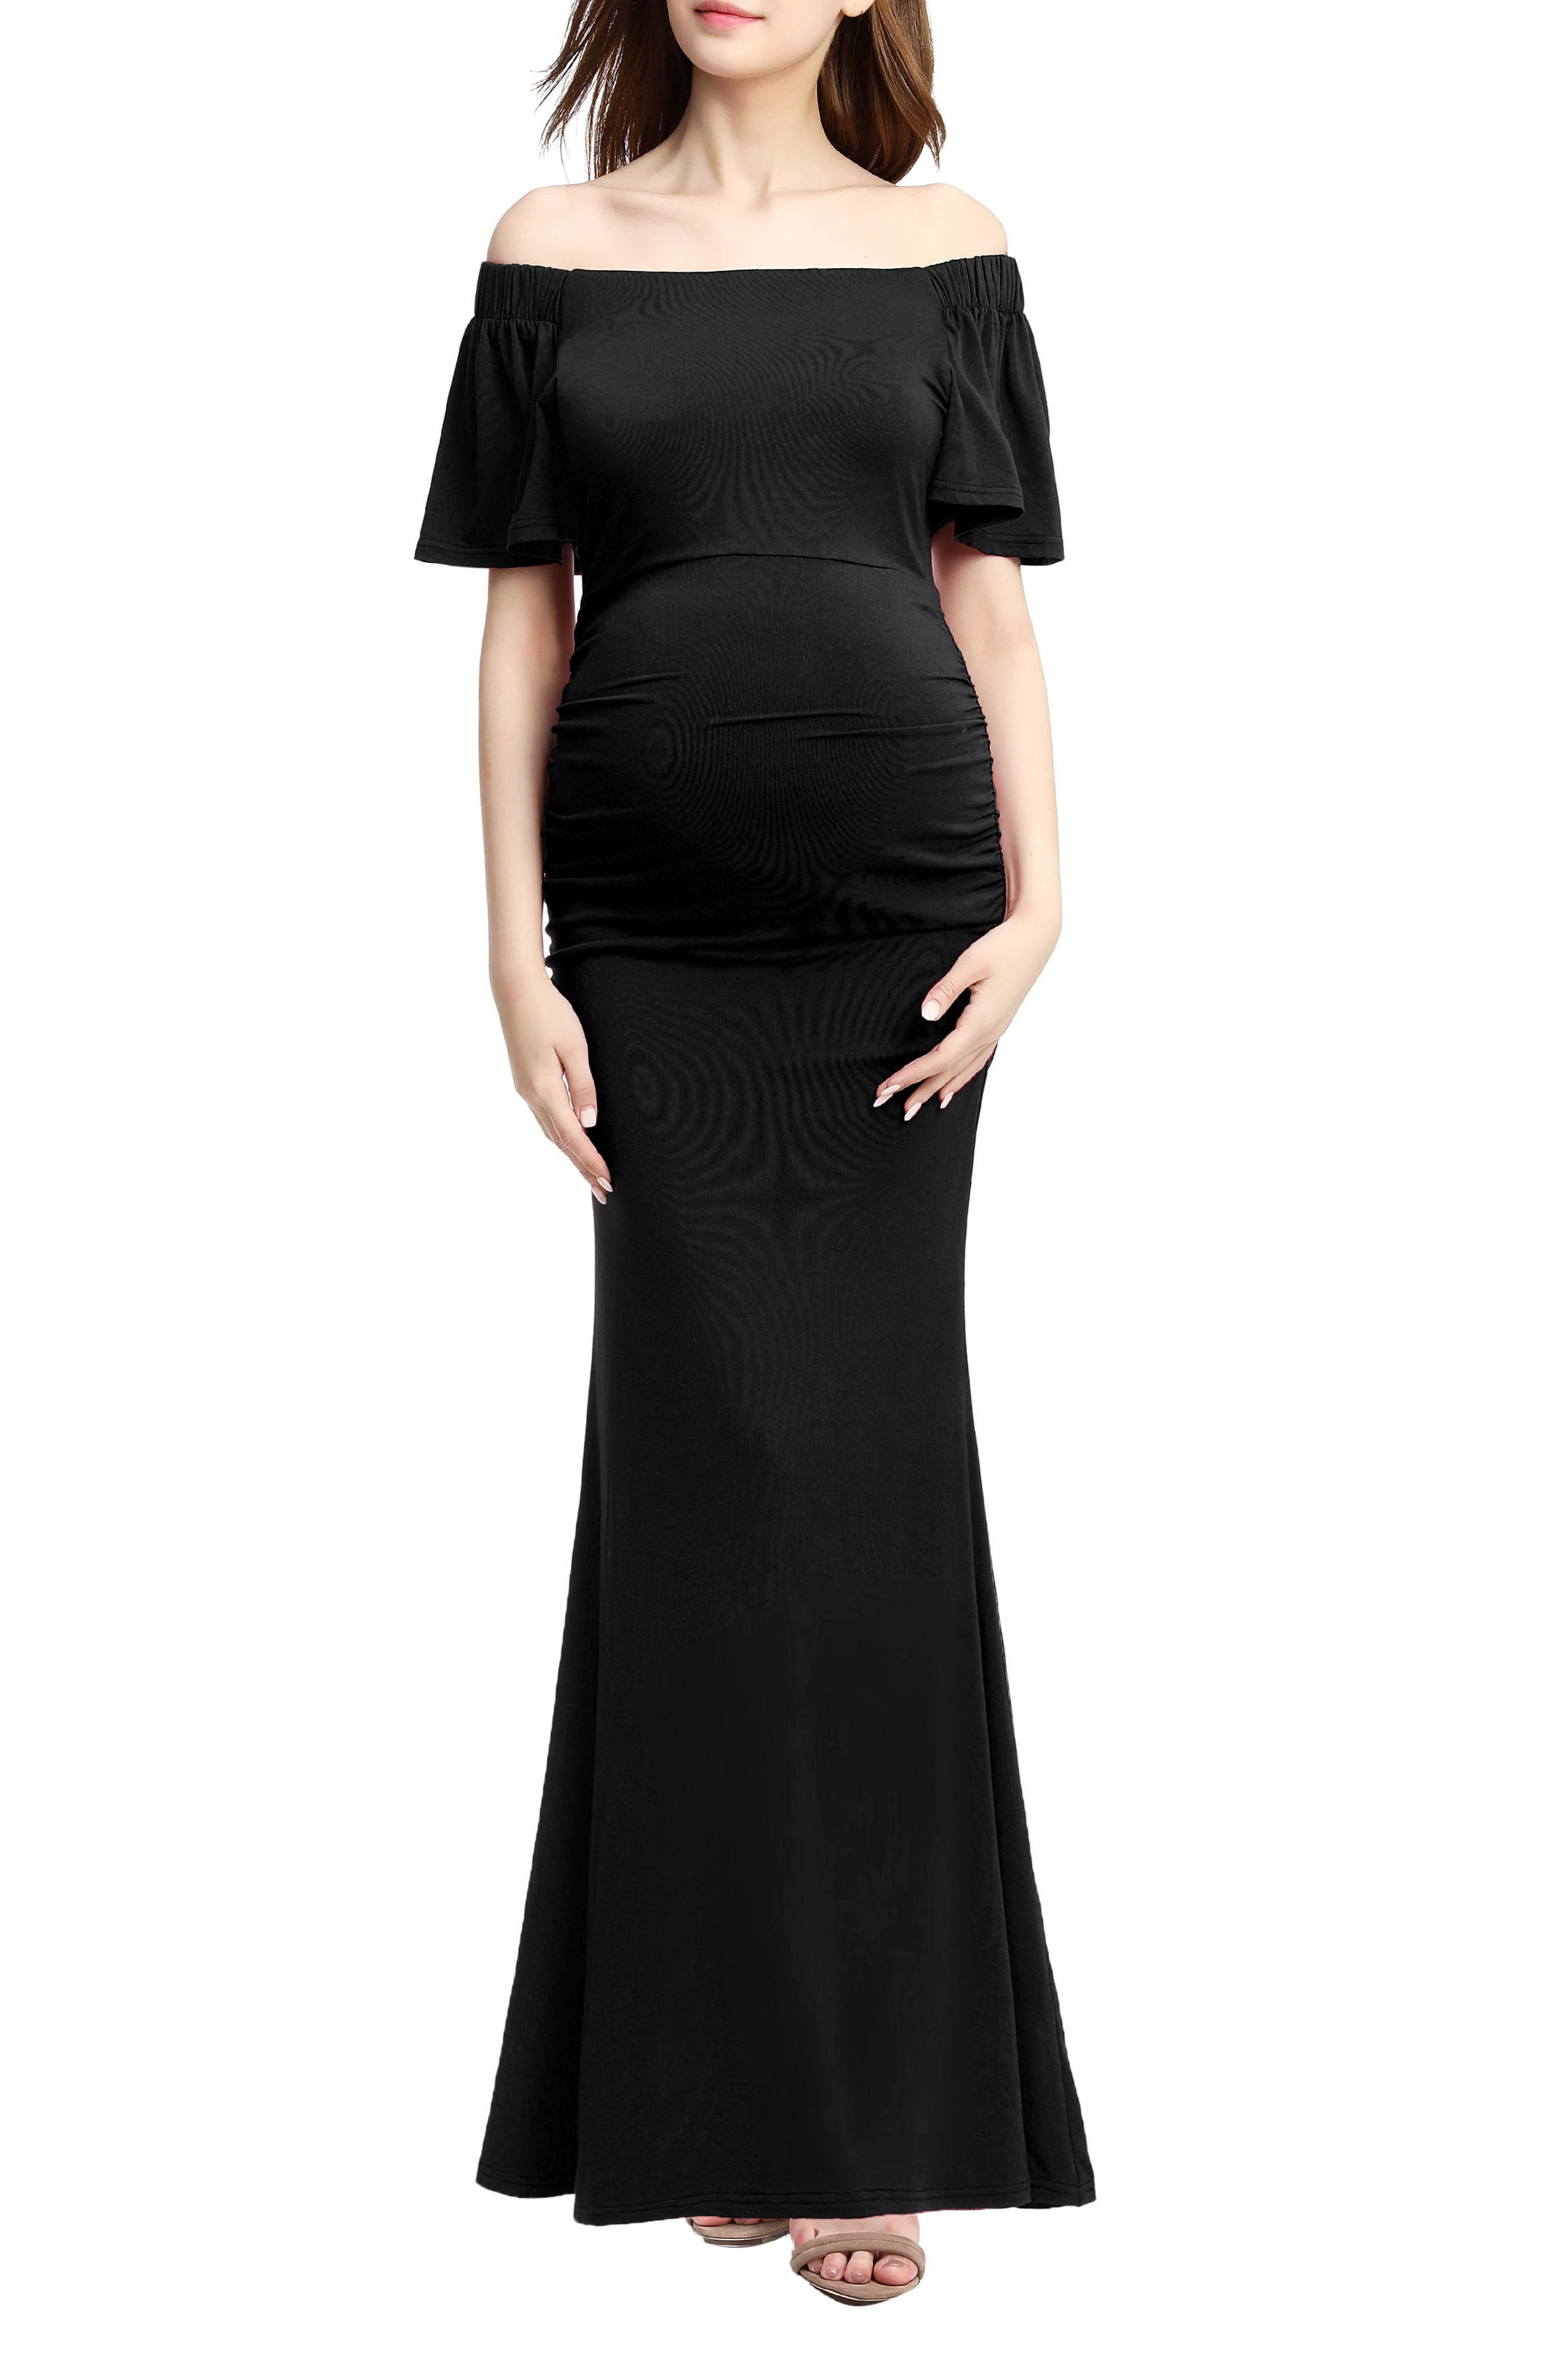 Kimi And Kai Abigail Off The Shoulder Maternity Dress, Black